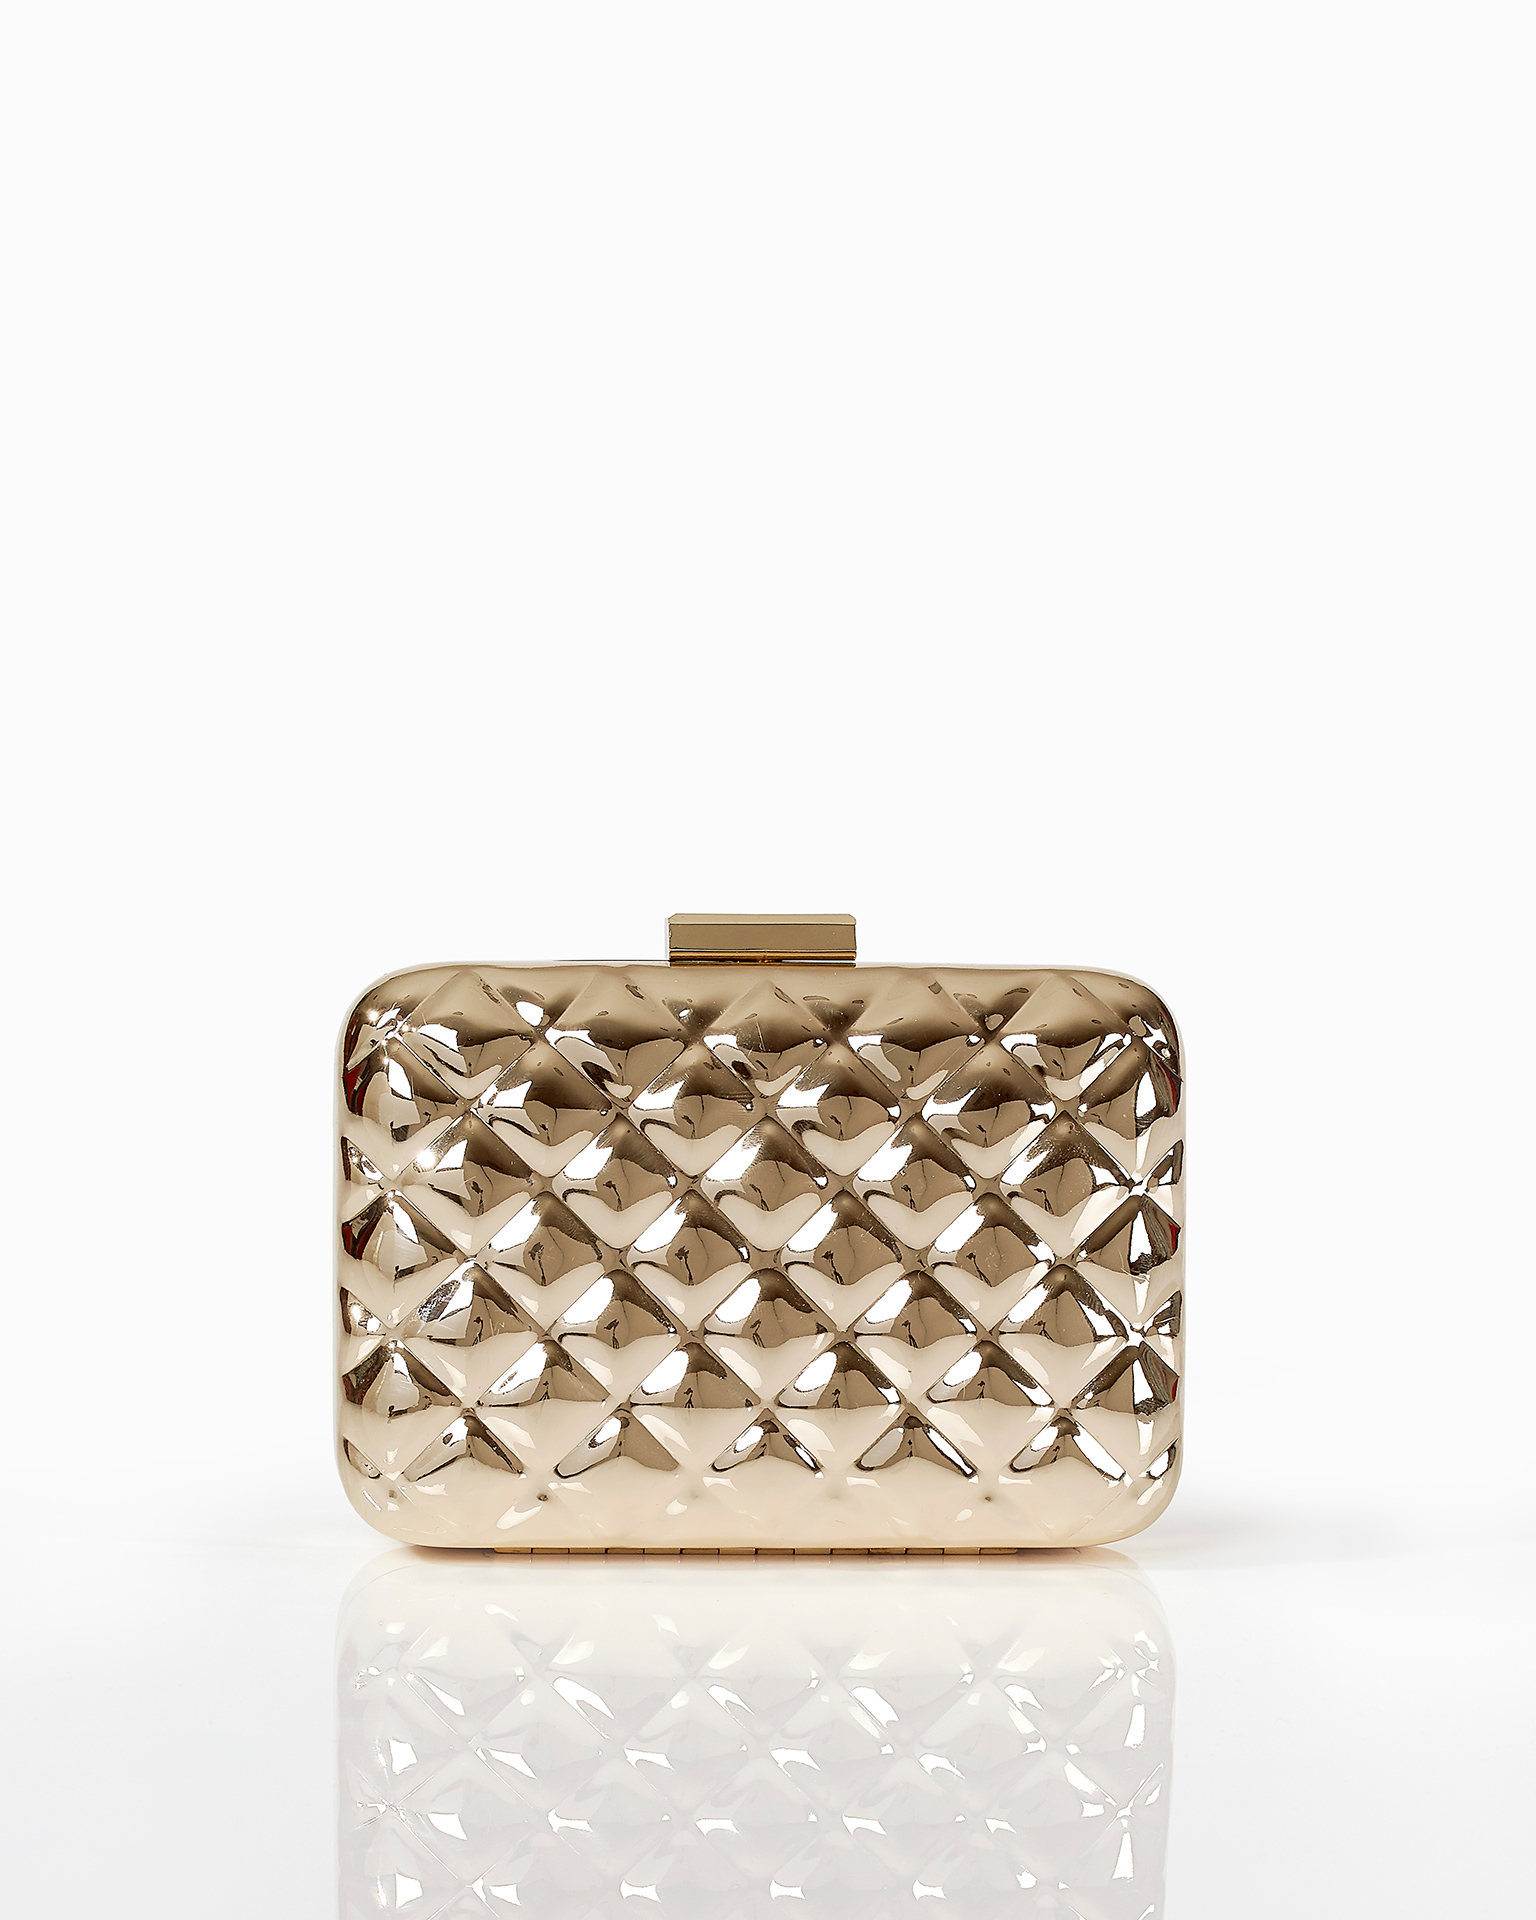 Metal clutch bag, in gold. 2018 FIESTA AIRE BARCELONA Collection.